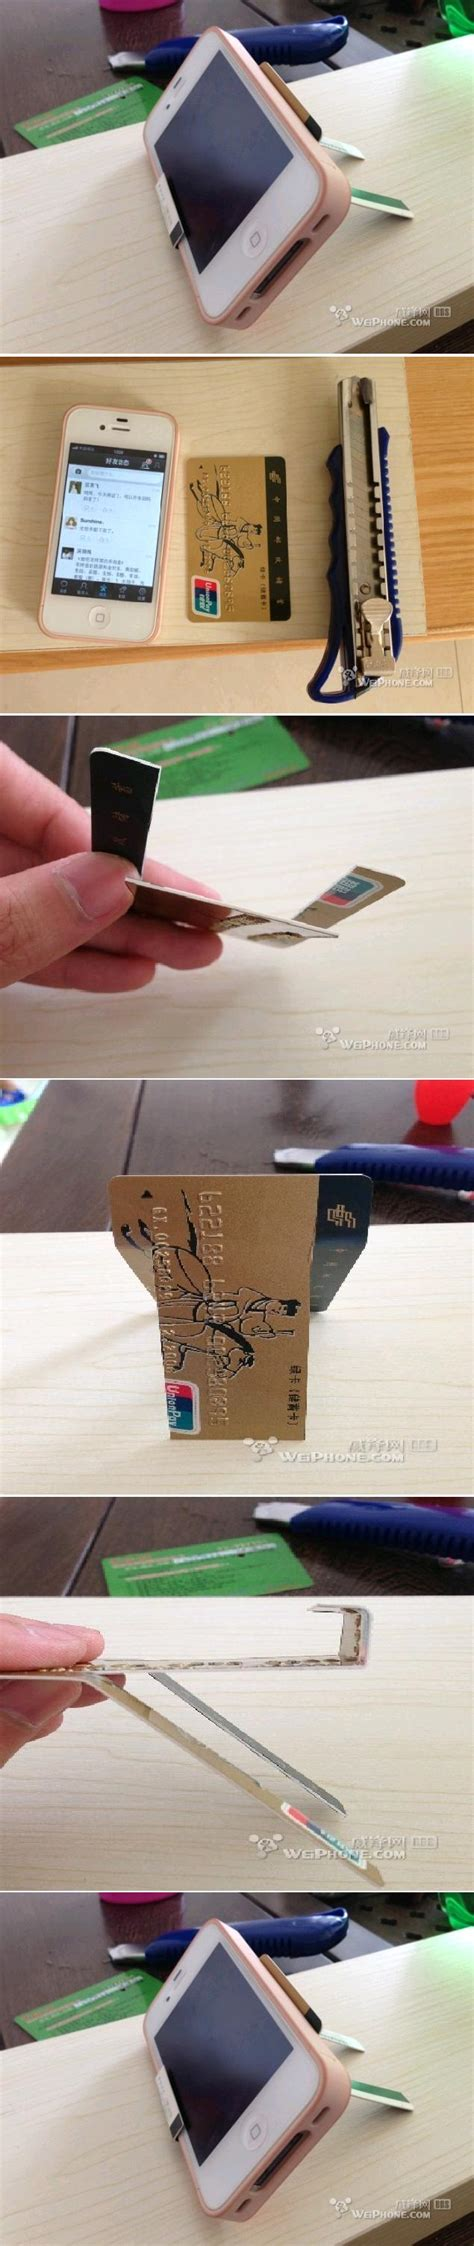 credit card iphone stand template diy credit card iphone stand diy projects usefuldiy